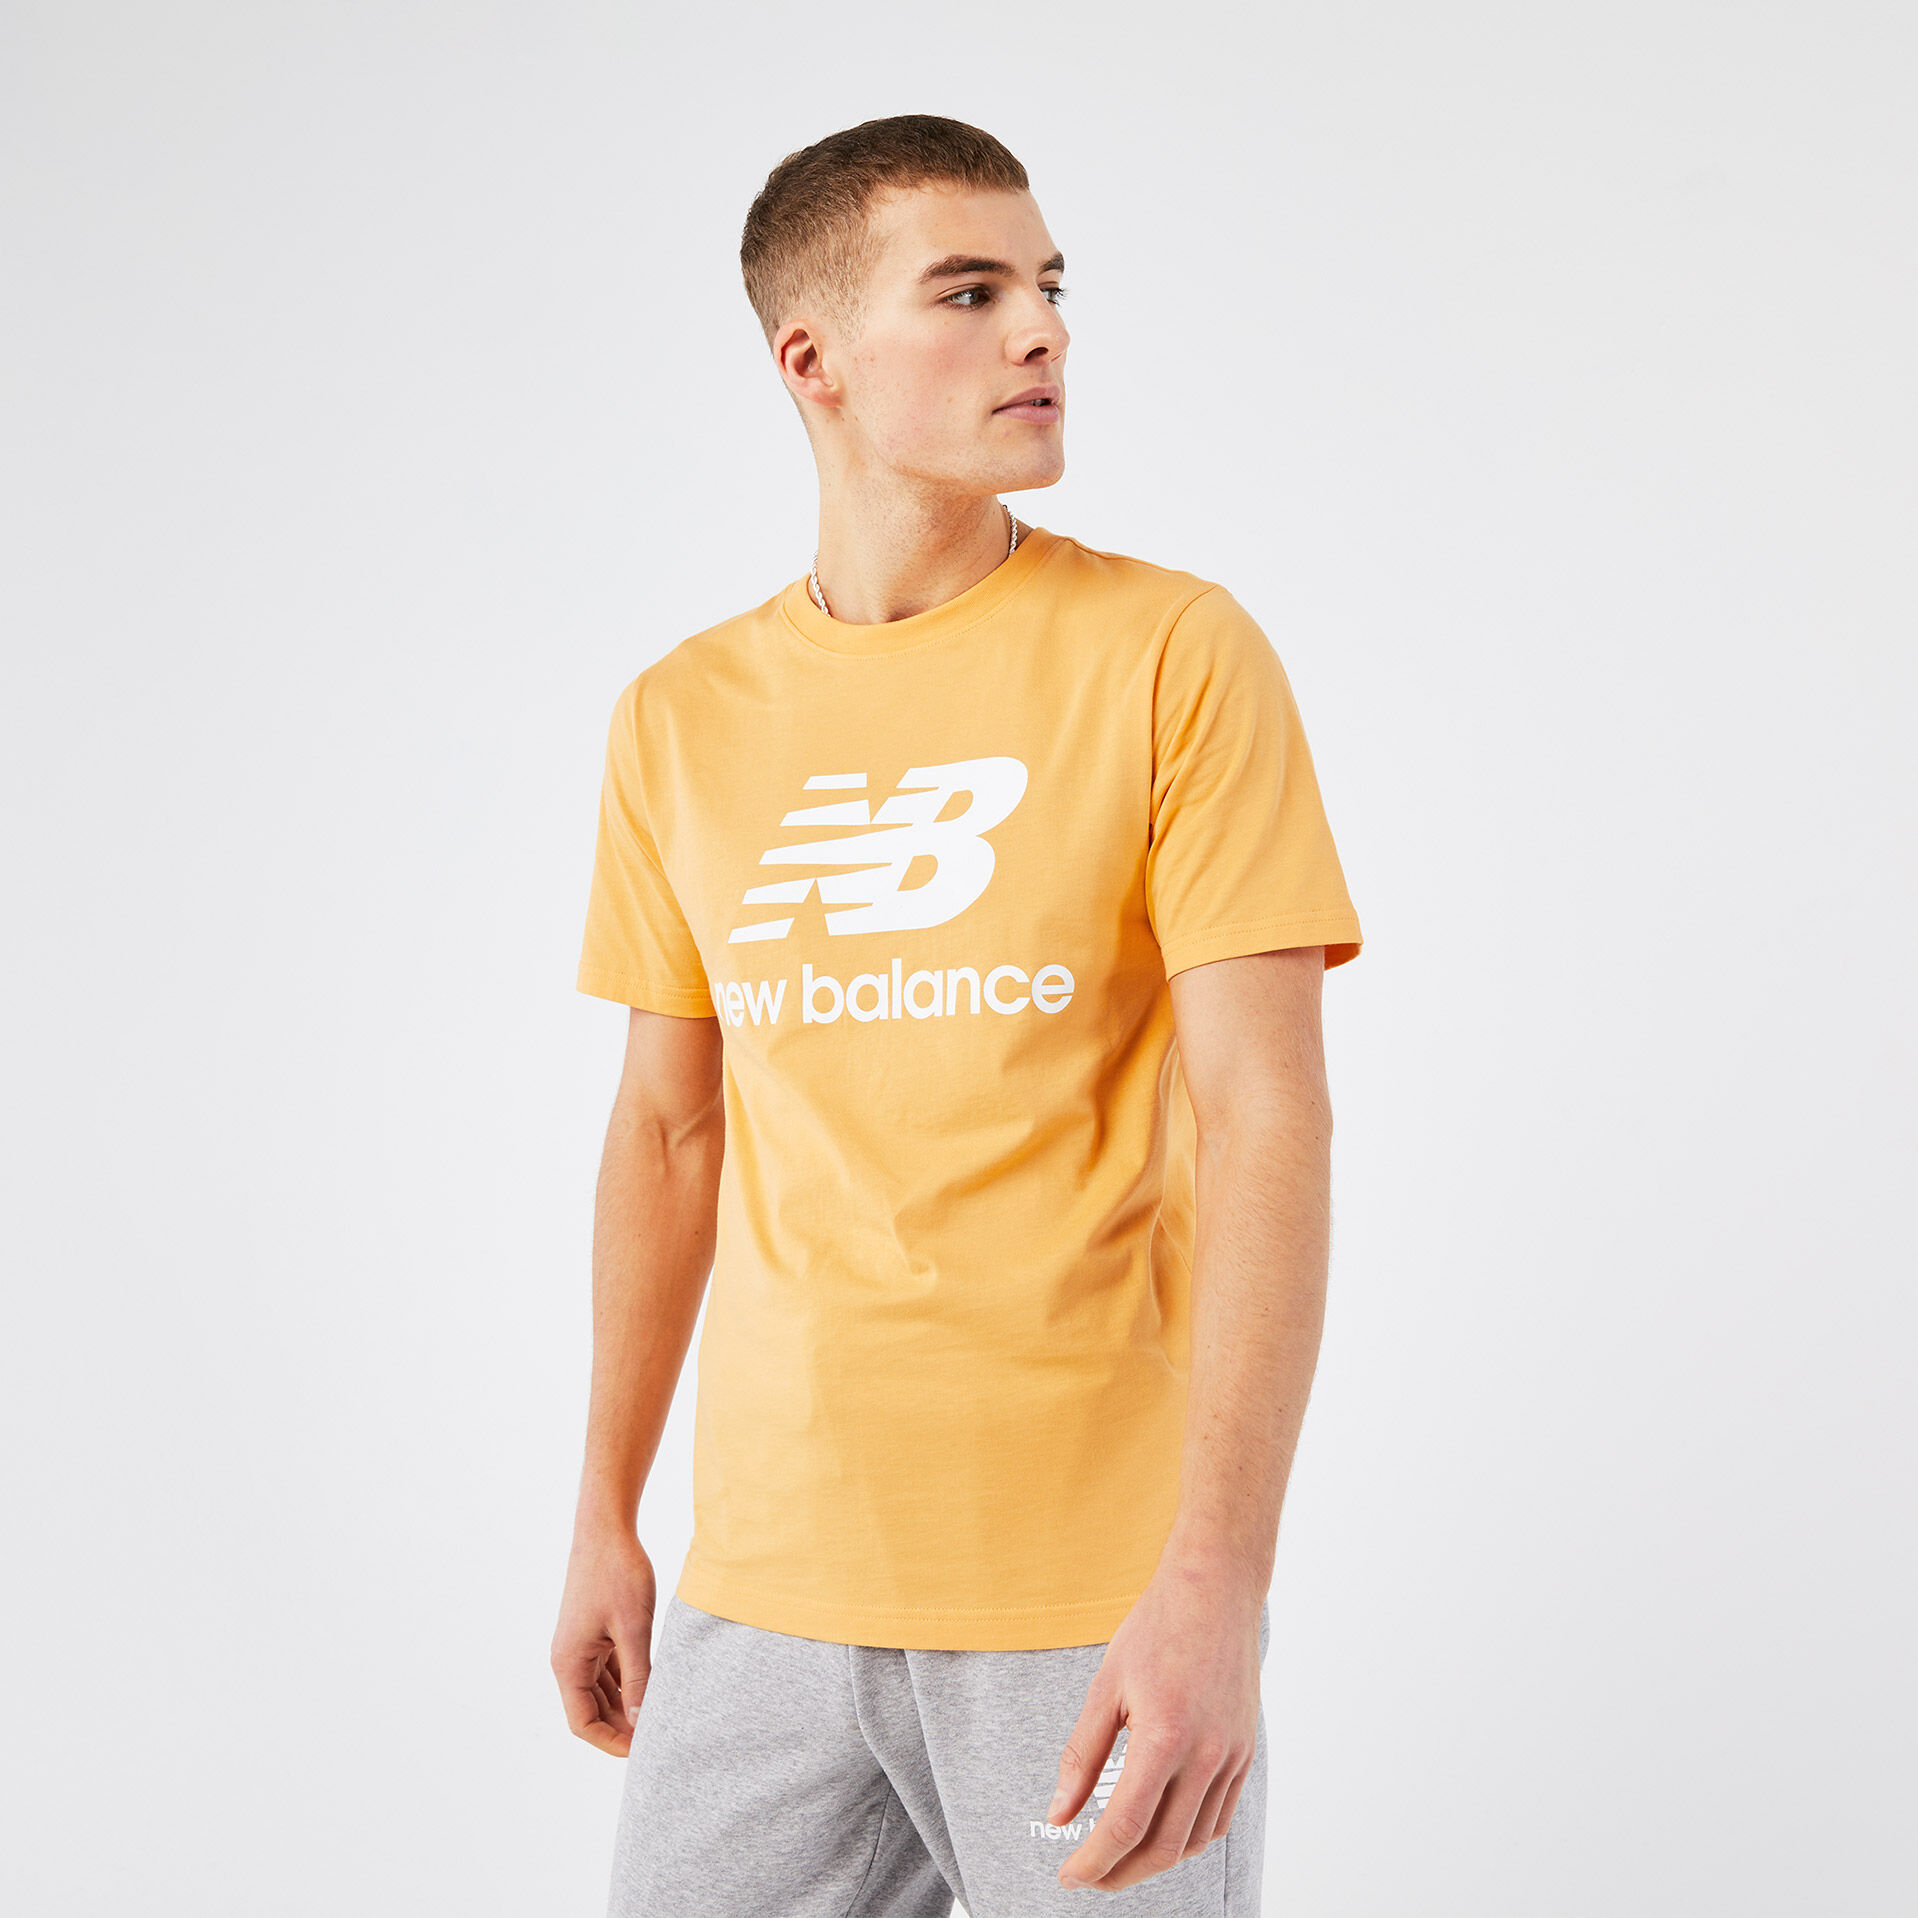 Newbalance.com | Official New Balance Site | Lead Your Own Way ...